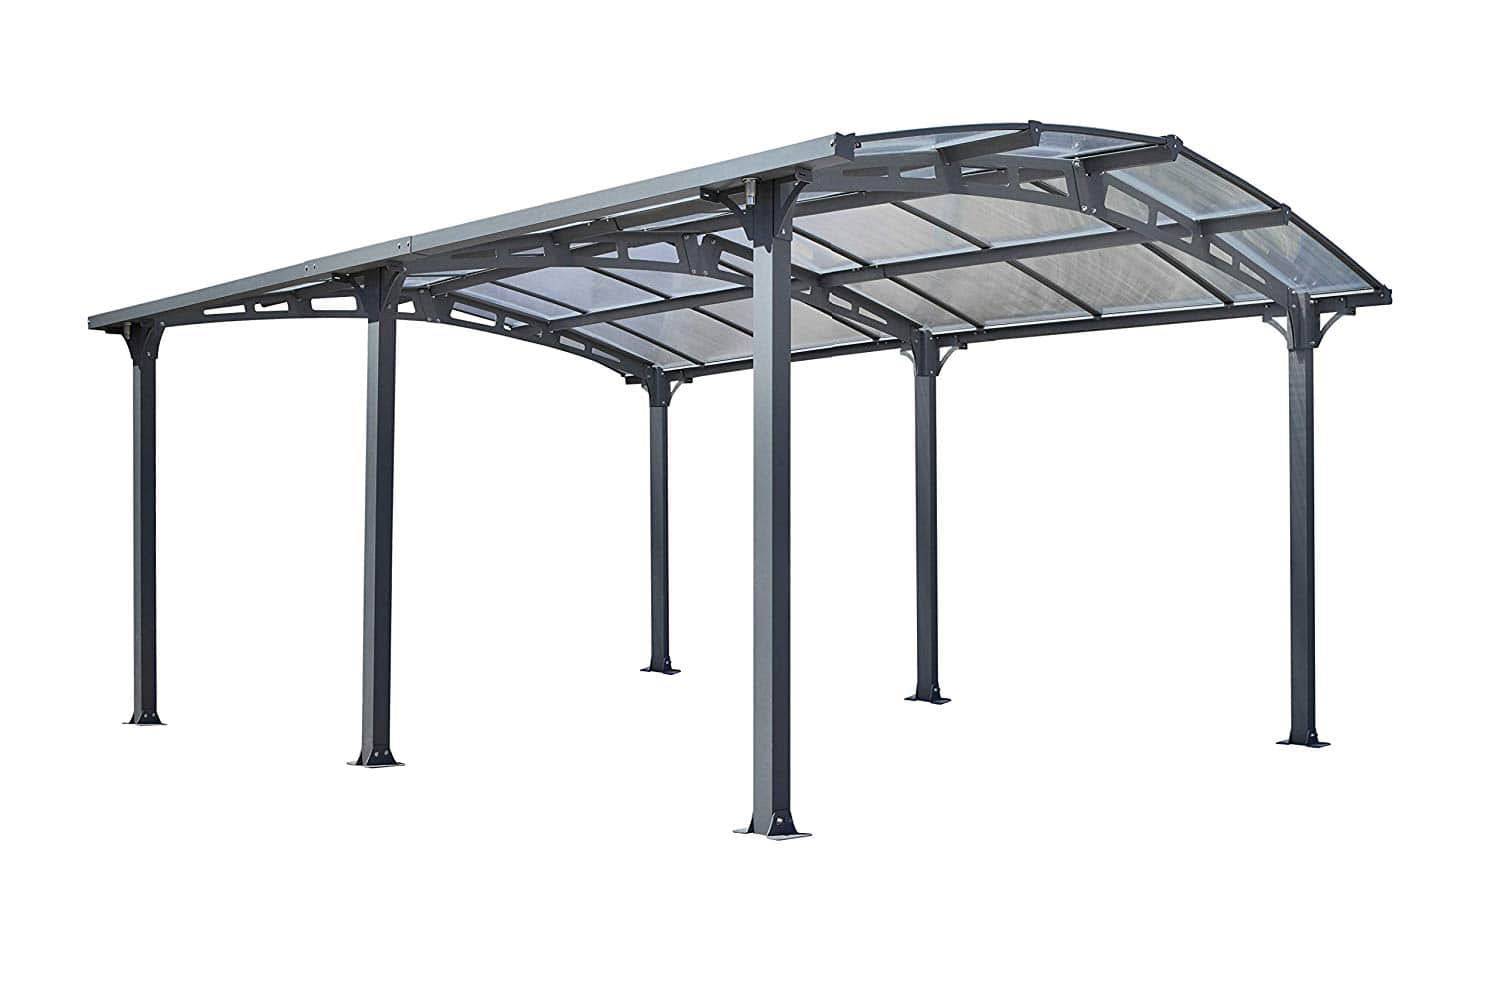 The 30 Best Carport Kits to Buy 2019 - Auto Quarterly